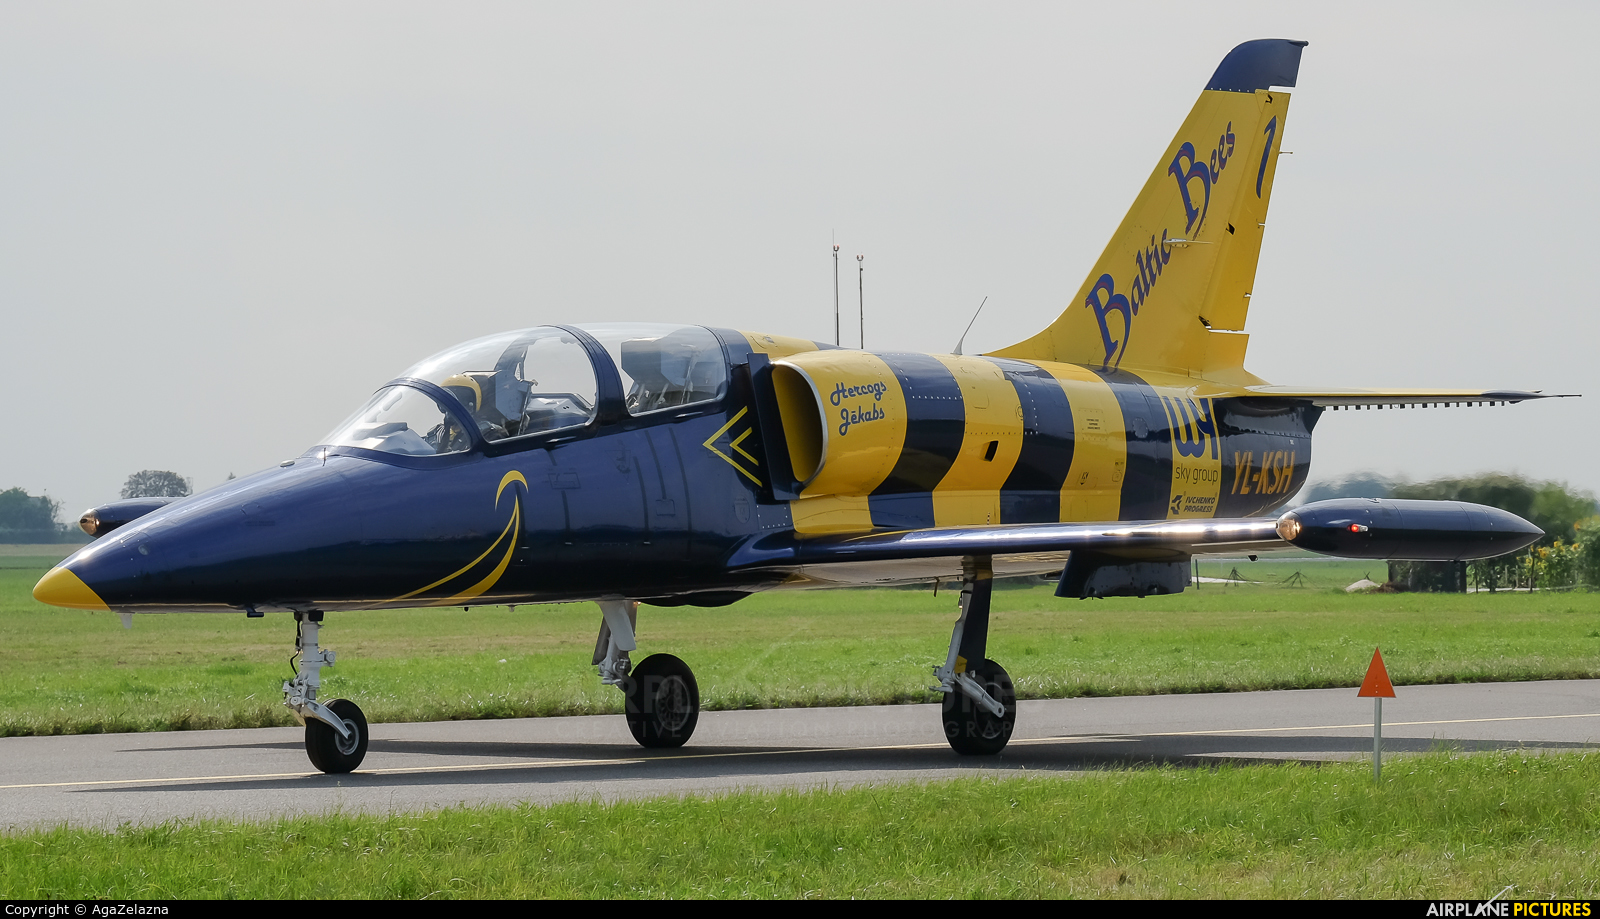 Baltic Bees Jet Team YL-KSH aircraft at Radom - Sadków